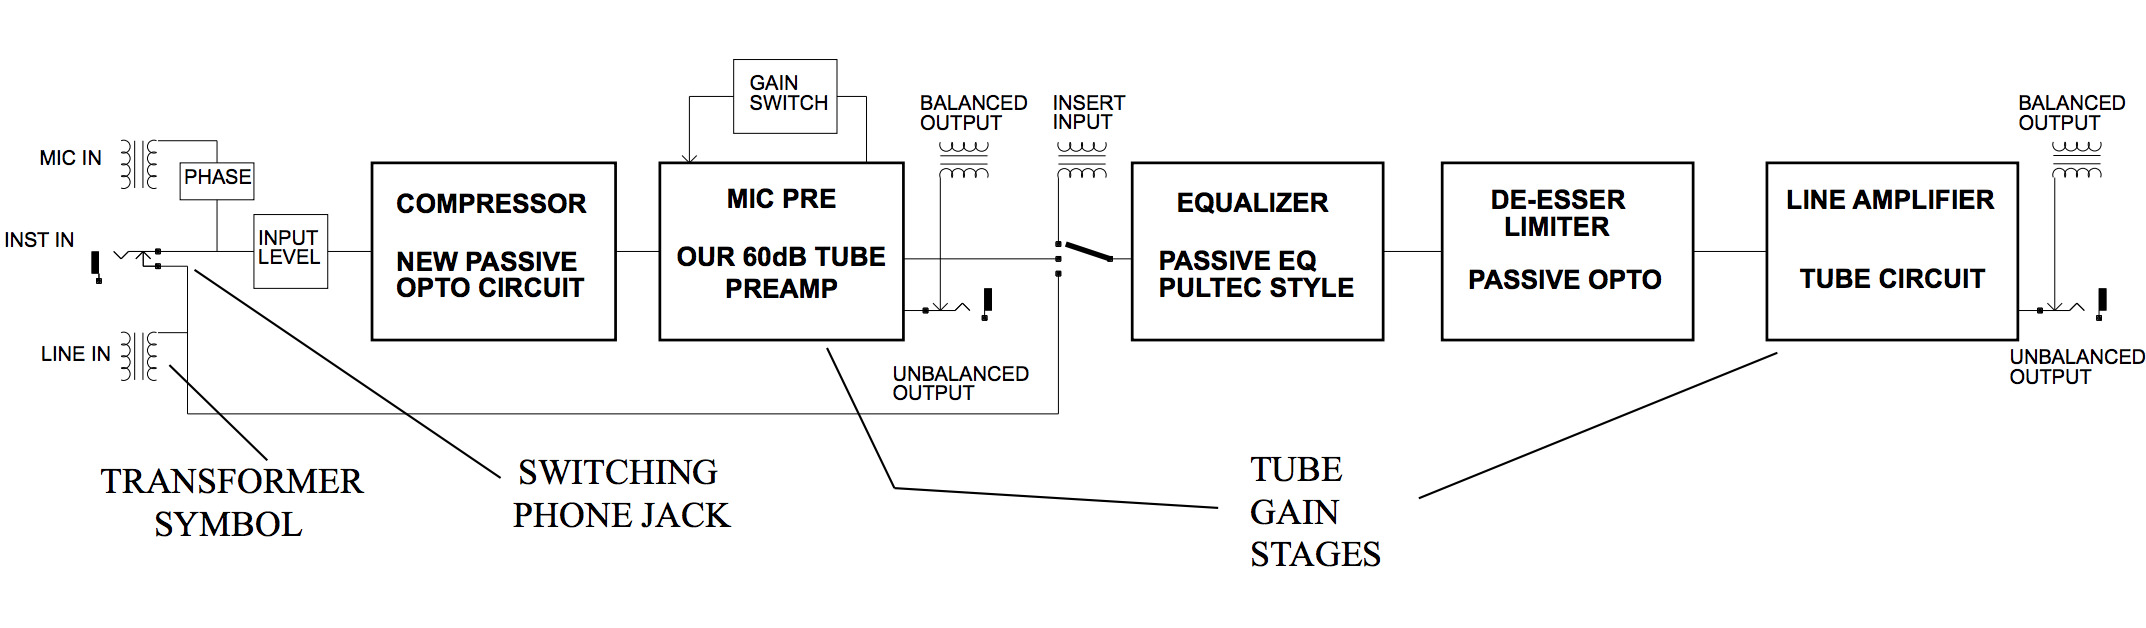 medium resolution of a block diagram illustrating the audio signal flow of the manley labs voxbox channel strip